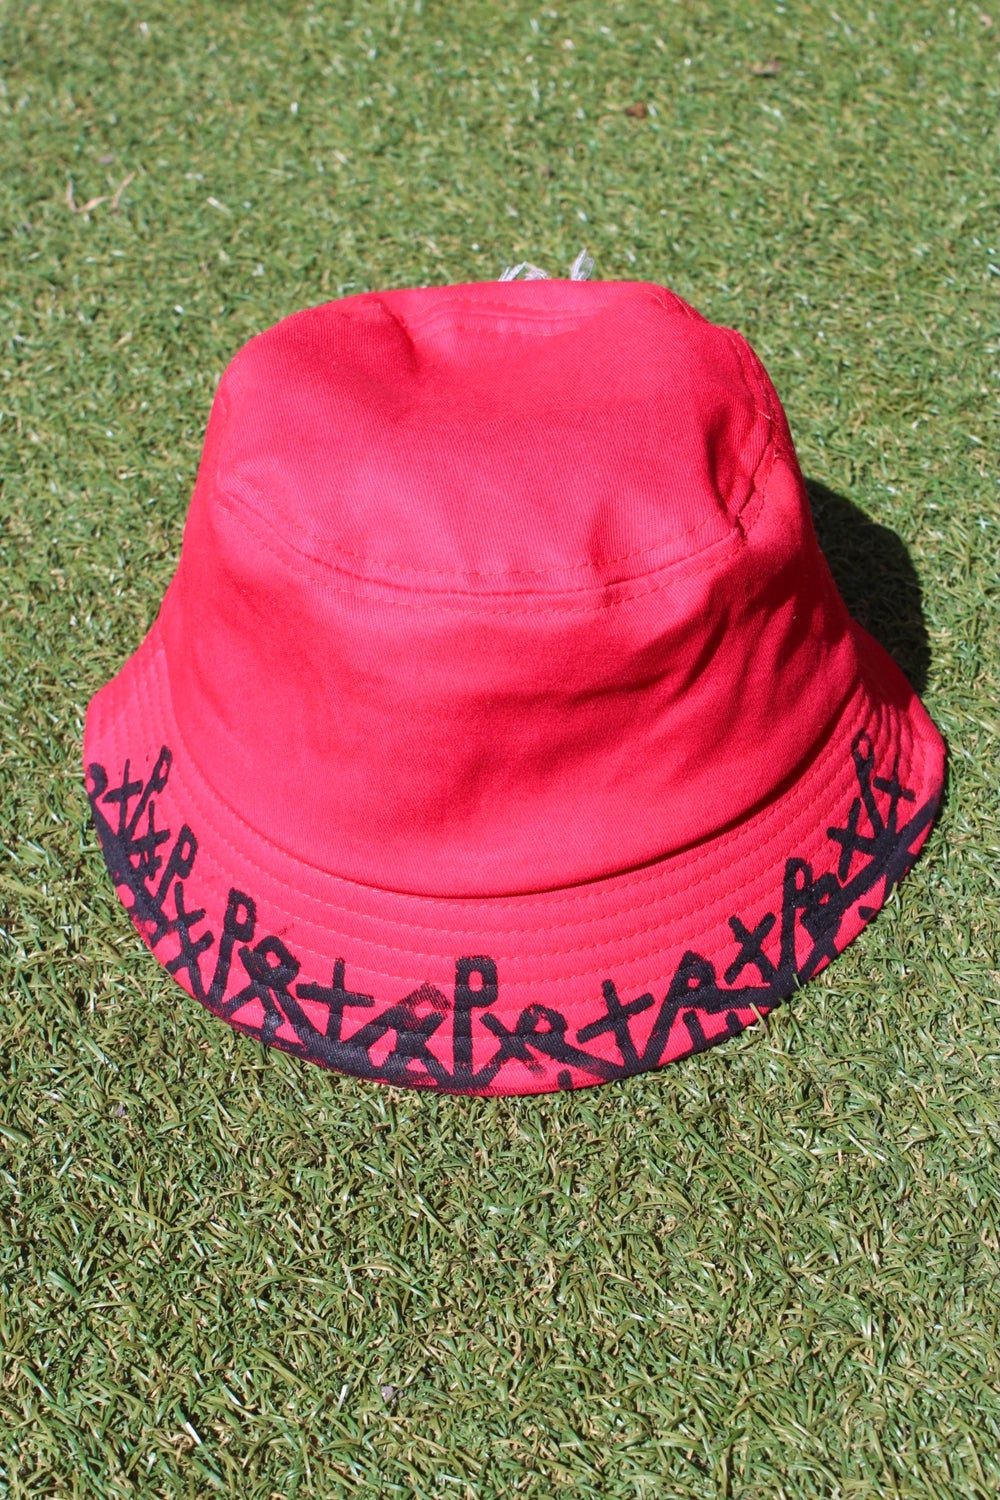 too many bucket hat in red